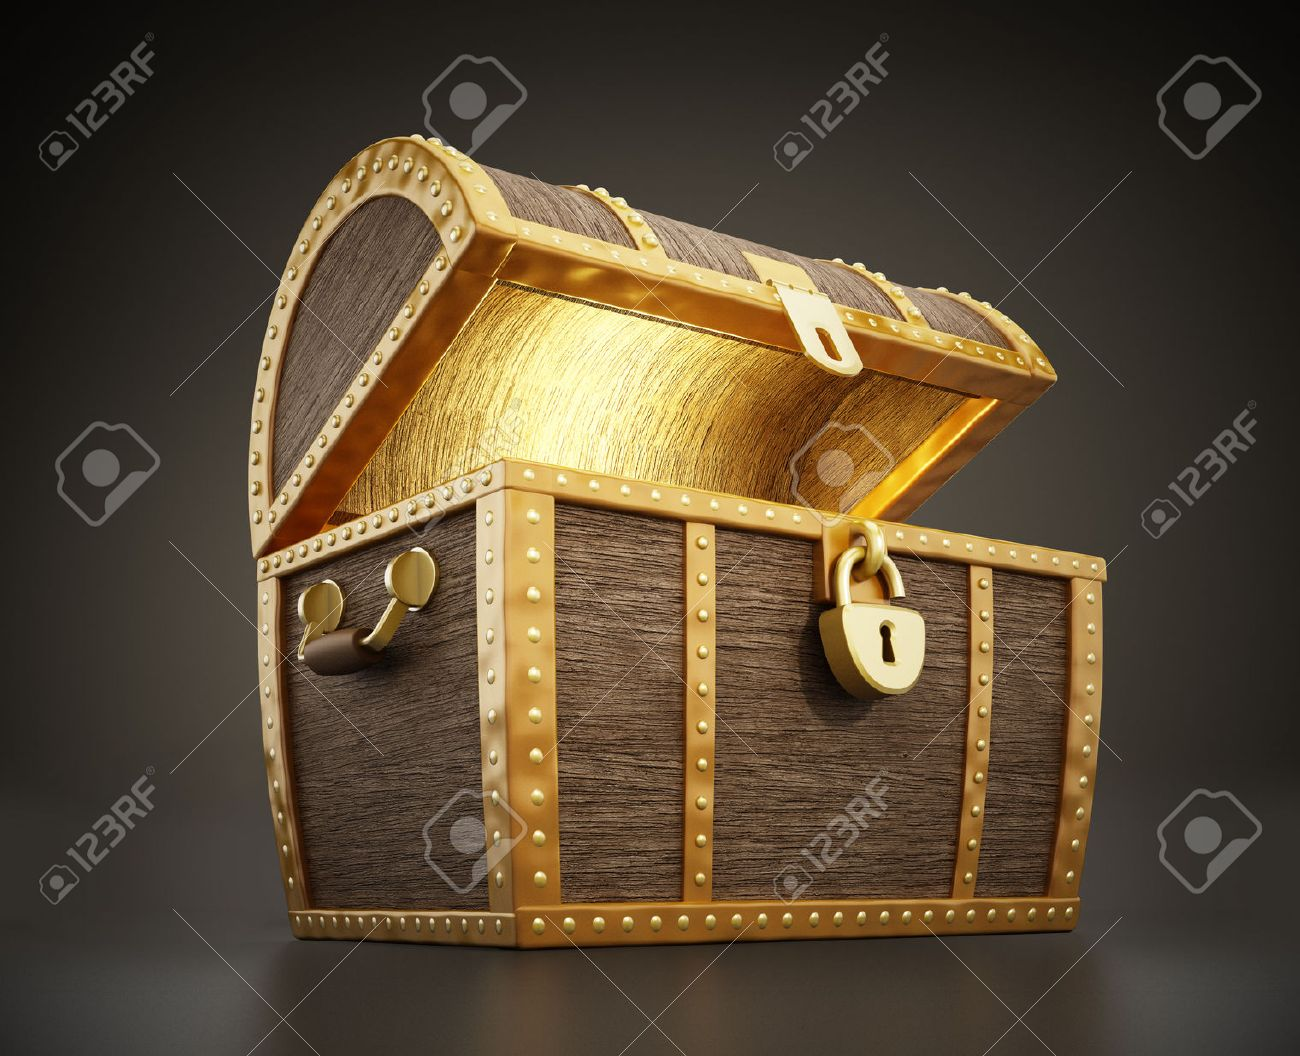 Glowing treasure chest full of treasures Stock Photo - 29608028